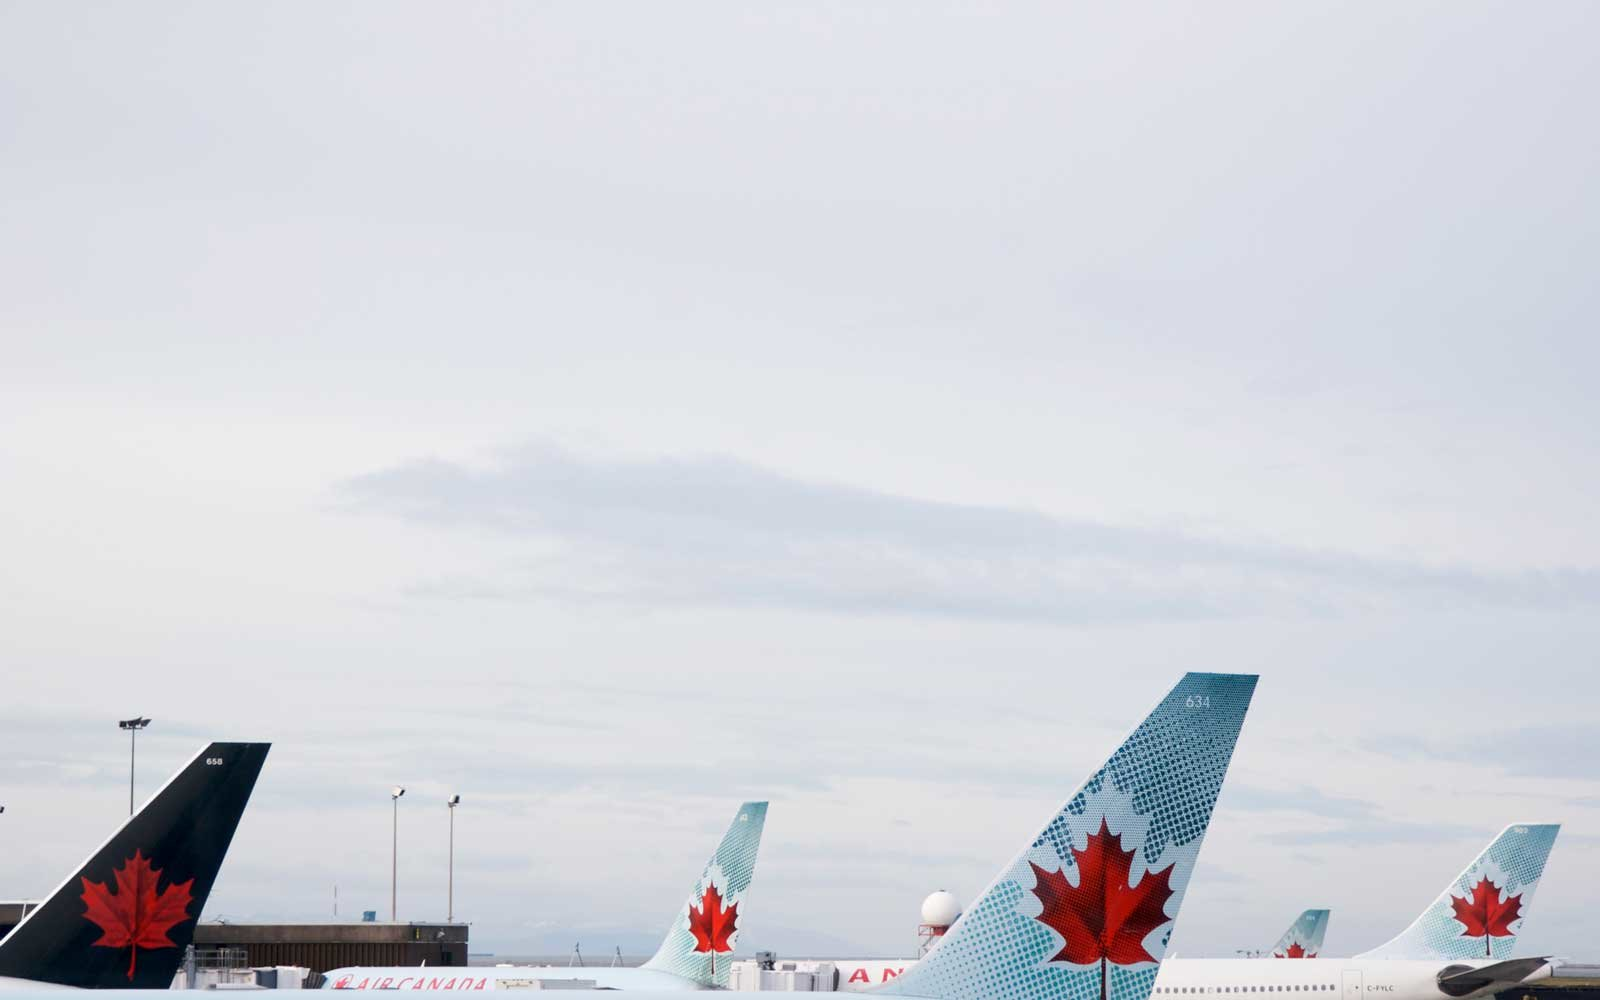 Air Canada Pilot Buys 23 Pizzas For Passengers Stranded On Tarmac